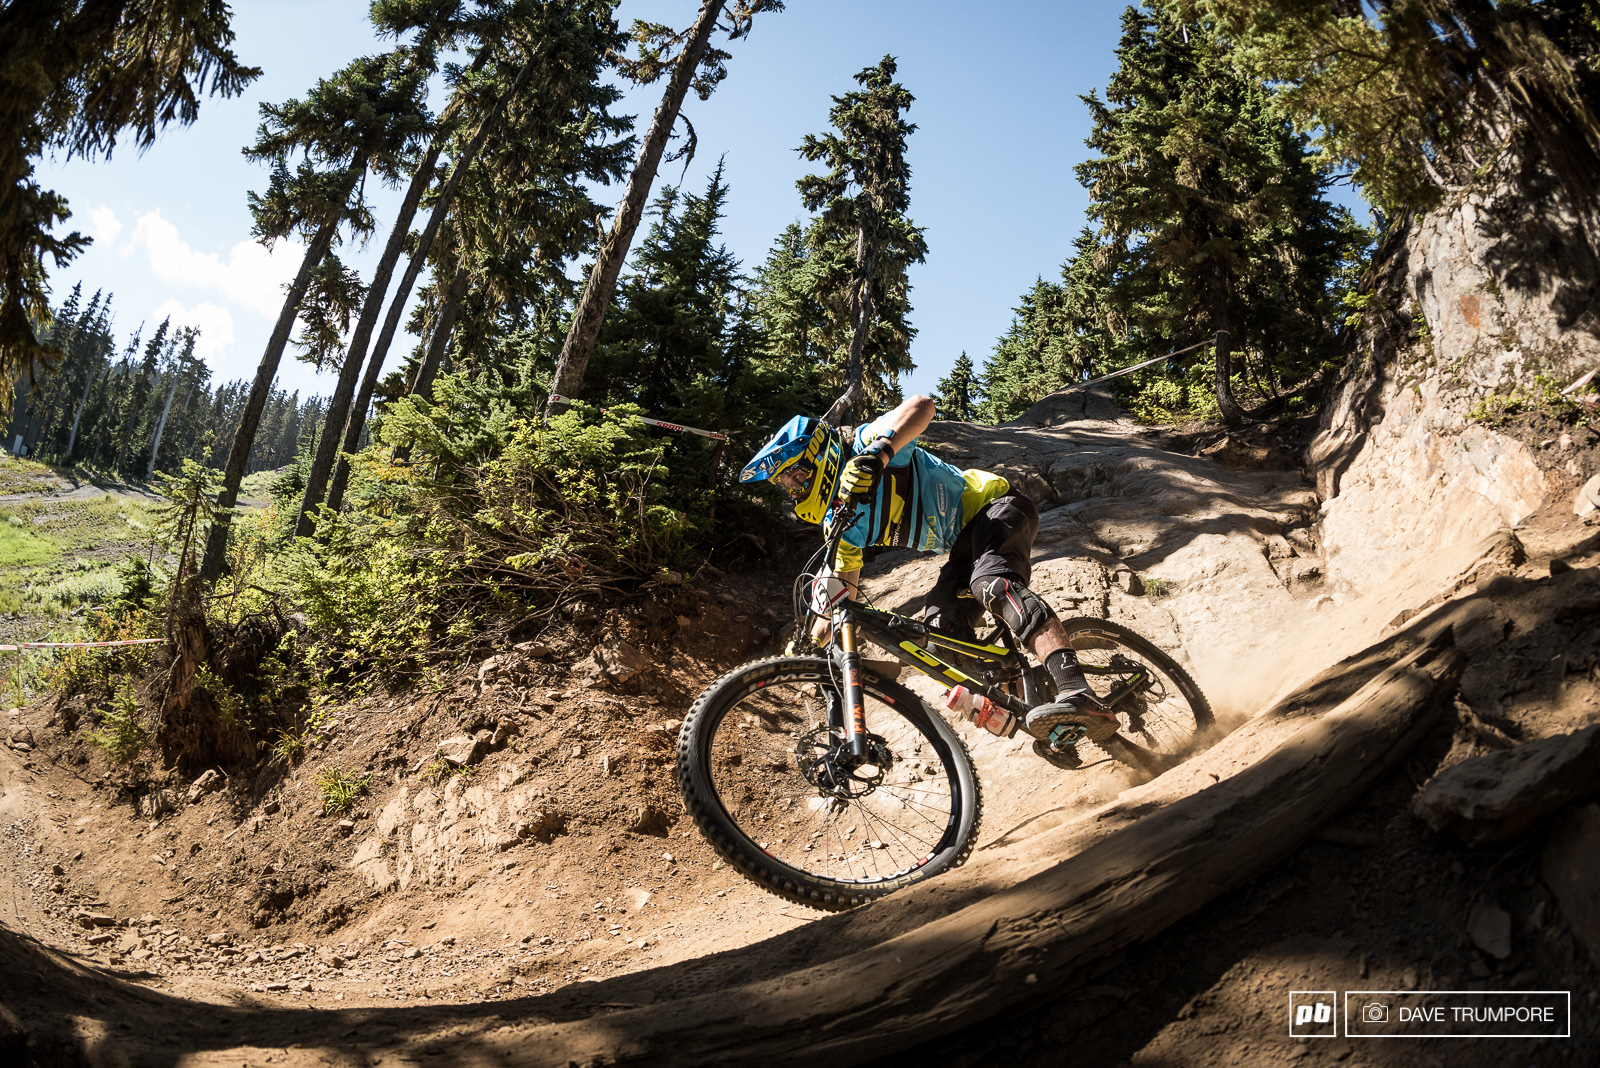 Wyn Maters went for the masochistic approach and tackled Garbanzo on his enduro bike.